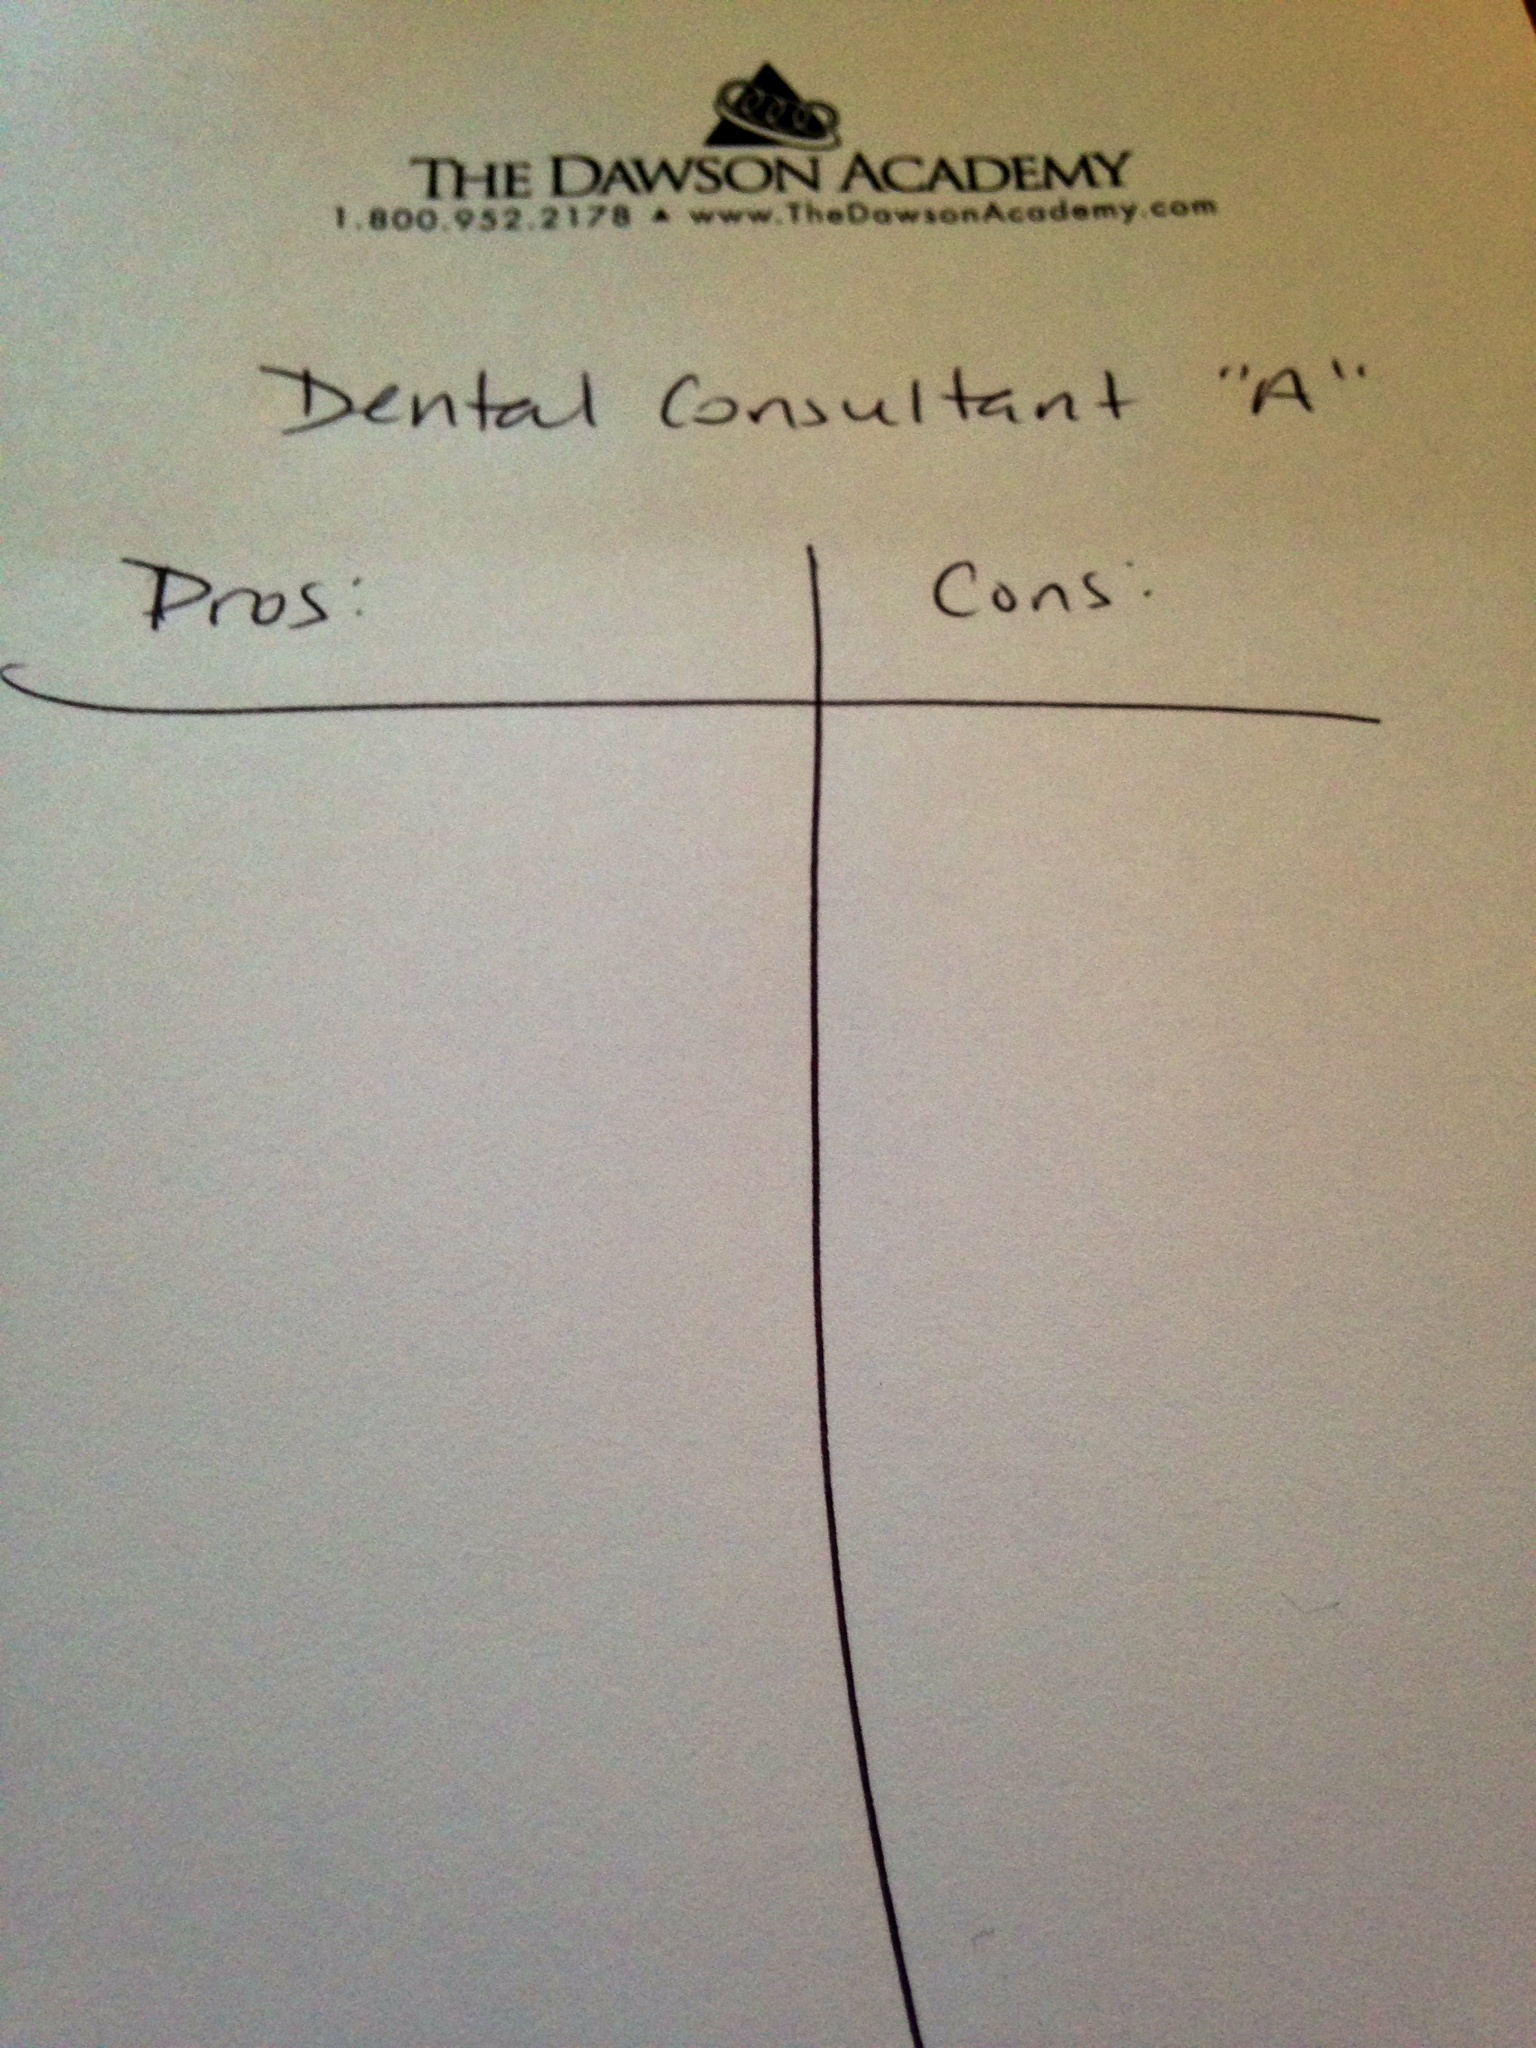 Finding the best dental consultant